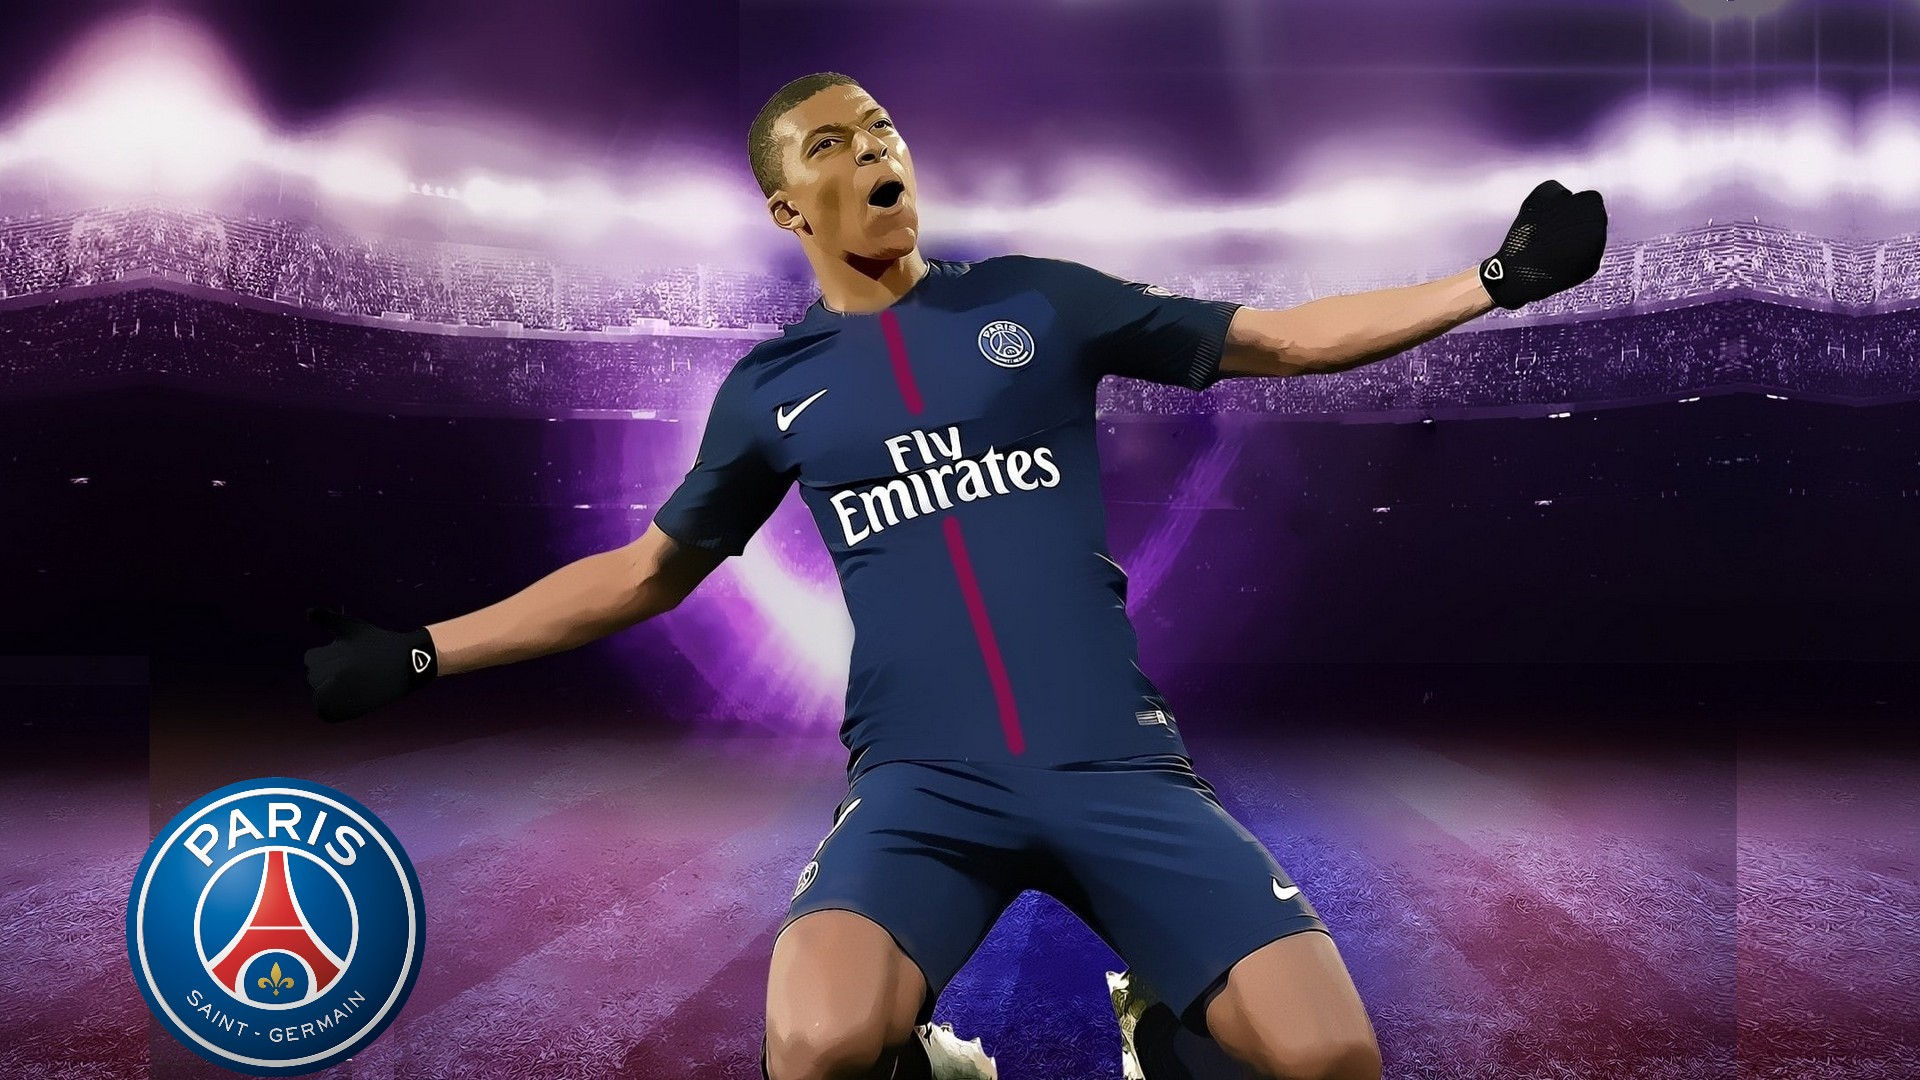 psg kylian mbappe wallpaper hd 2021